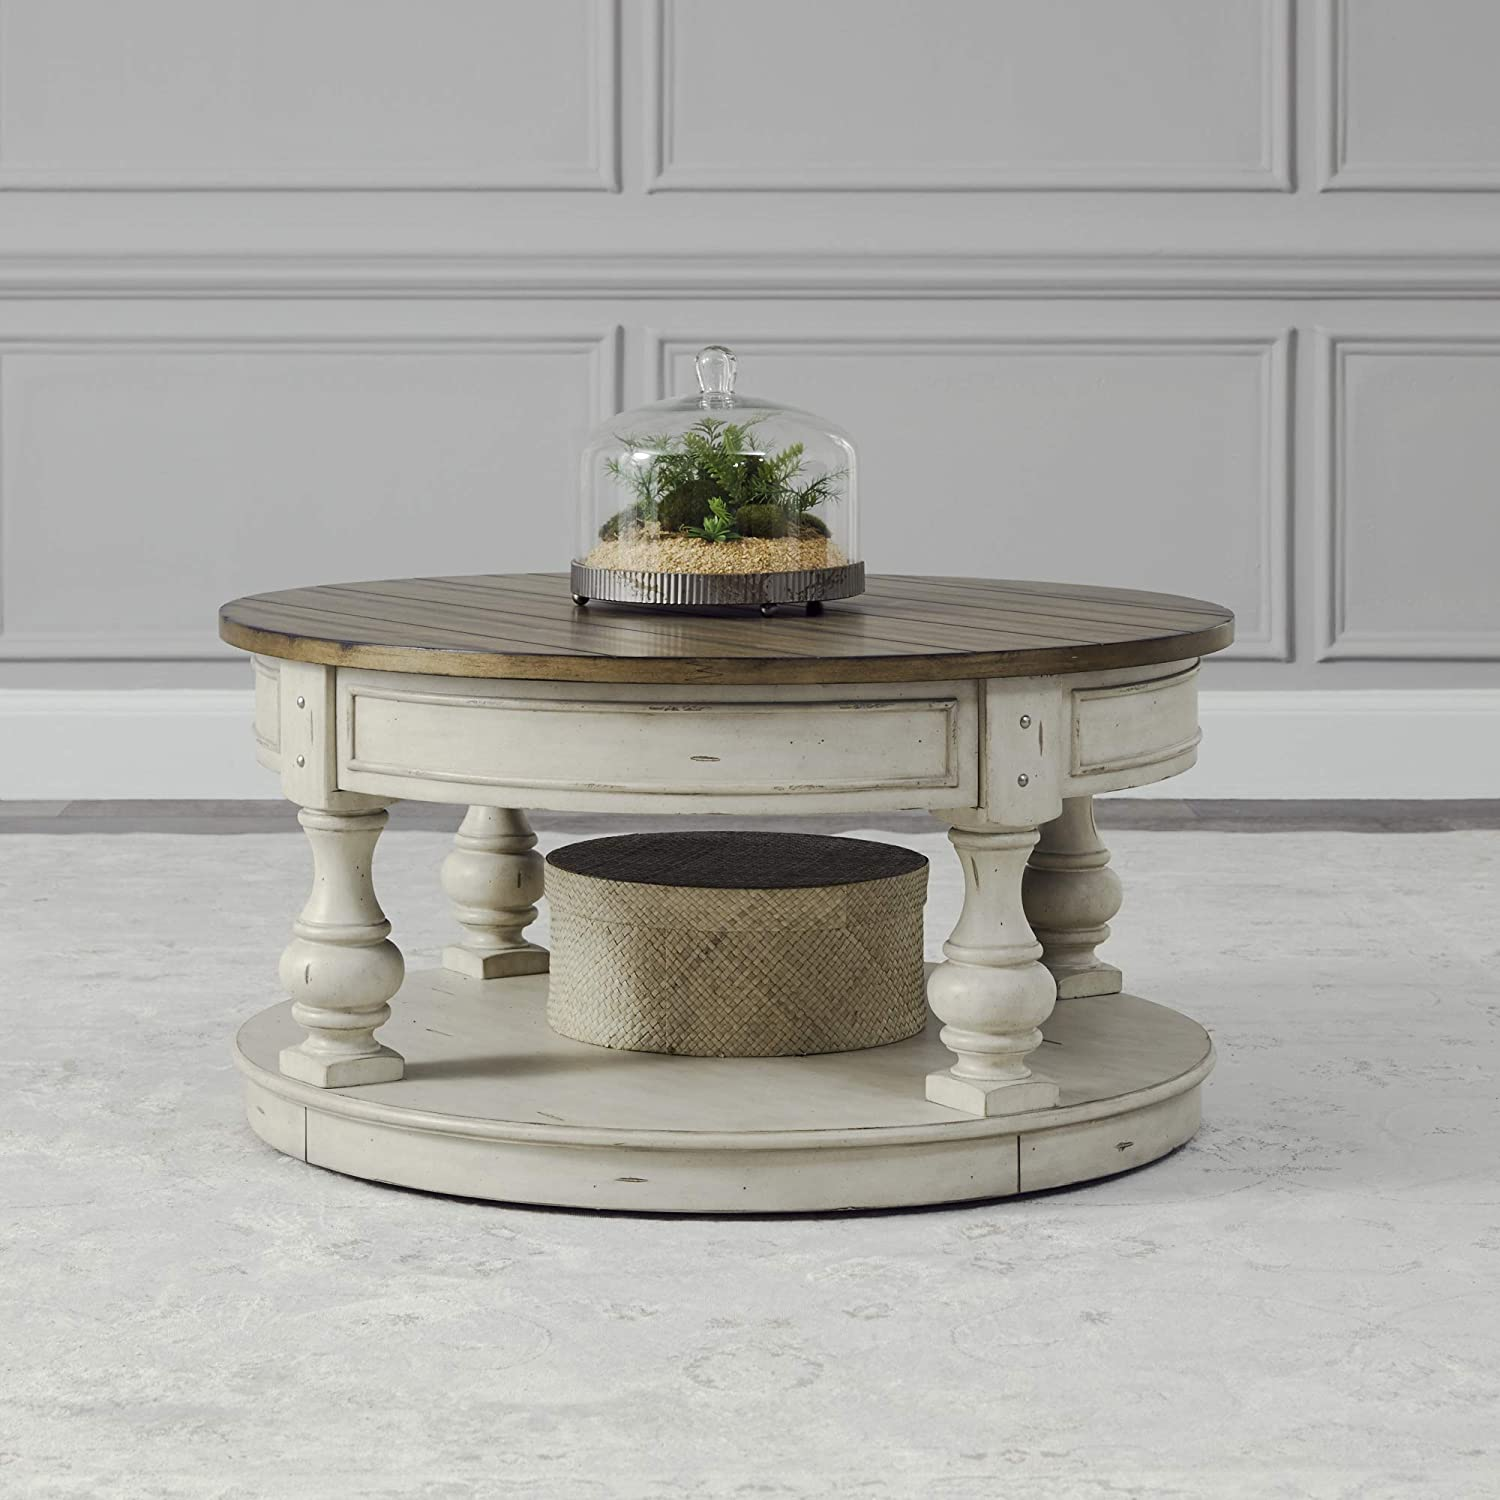 Liberty Furniture Industries Morgan Creek Round Cocktail Table, W38 x D38 x H20, White